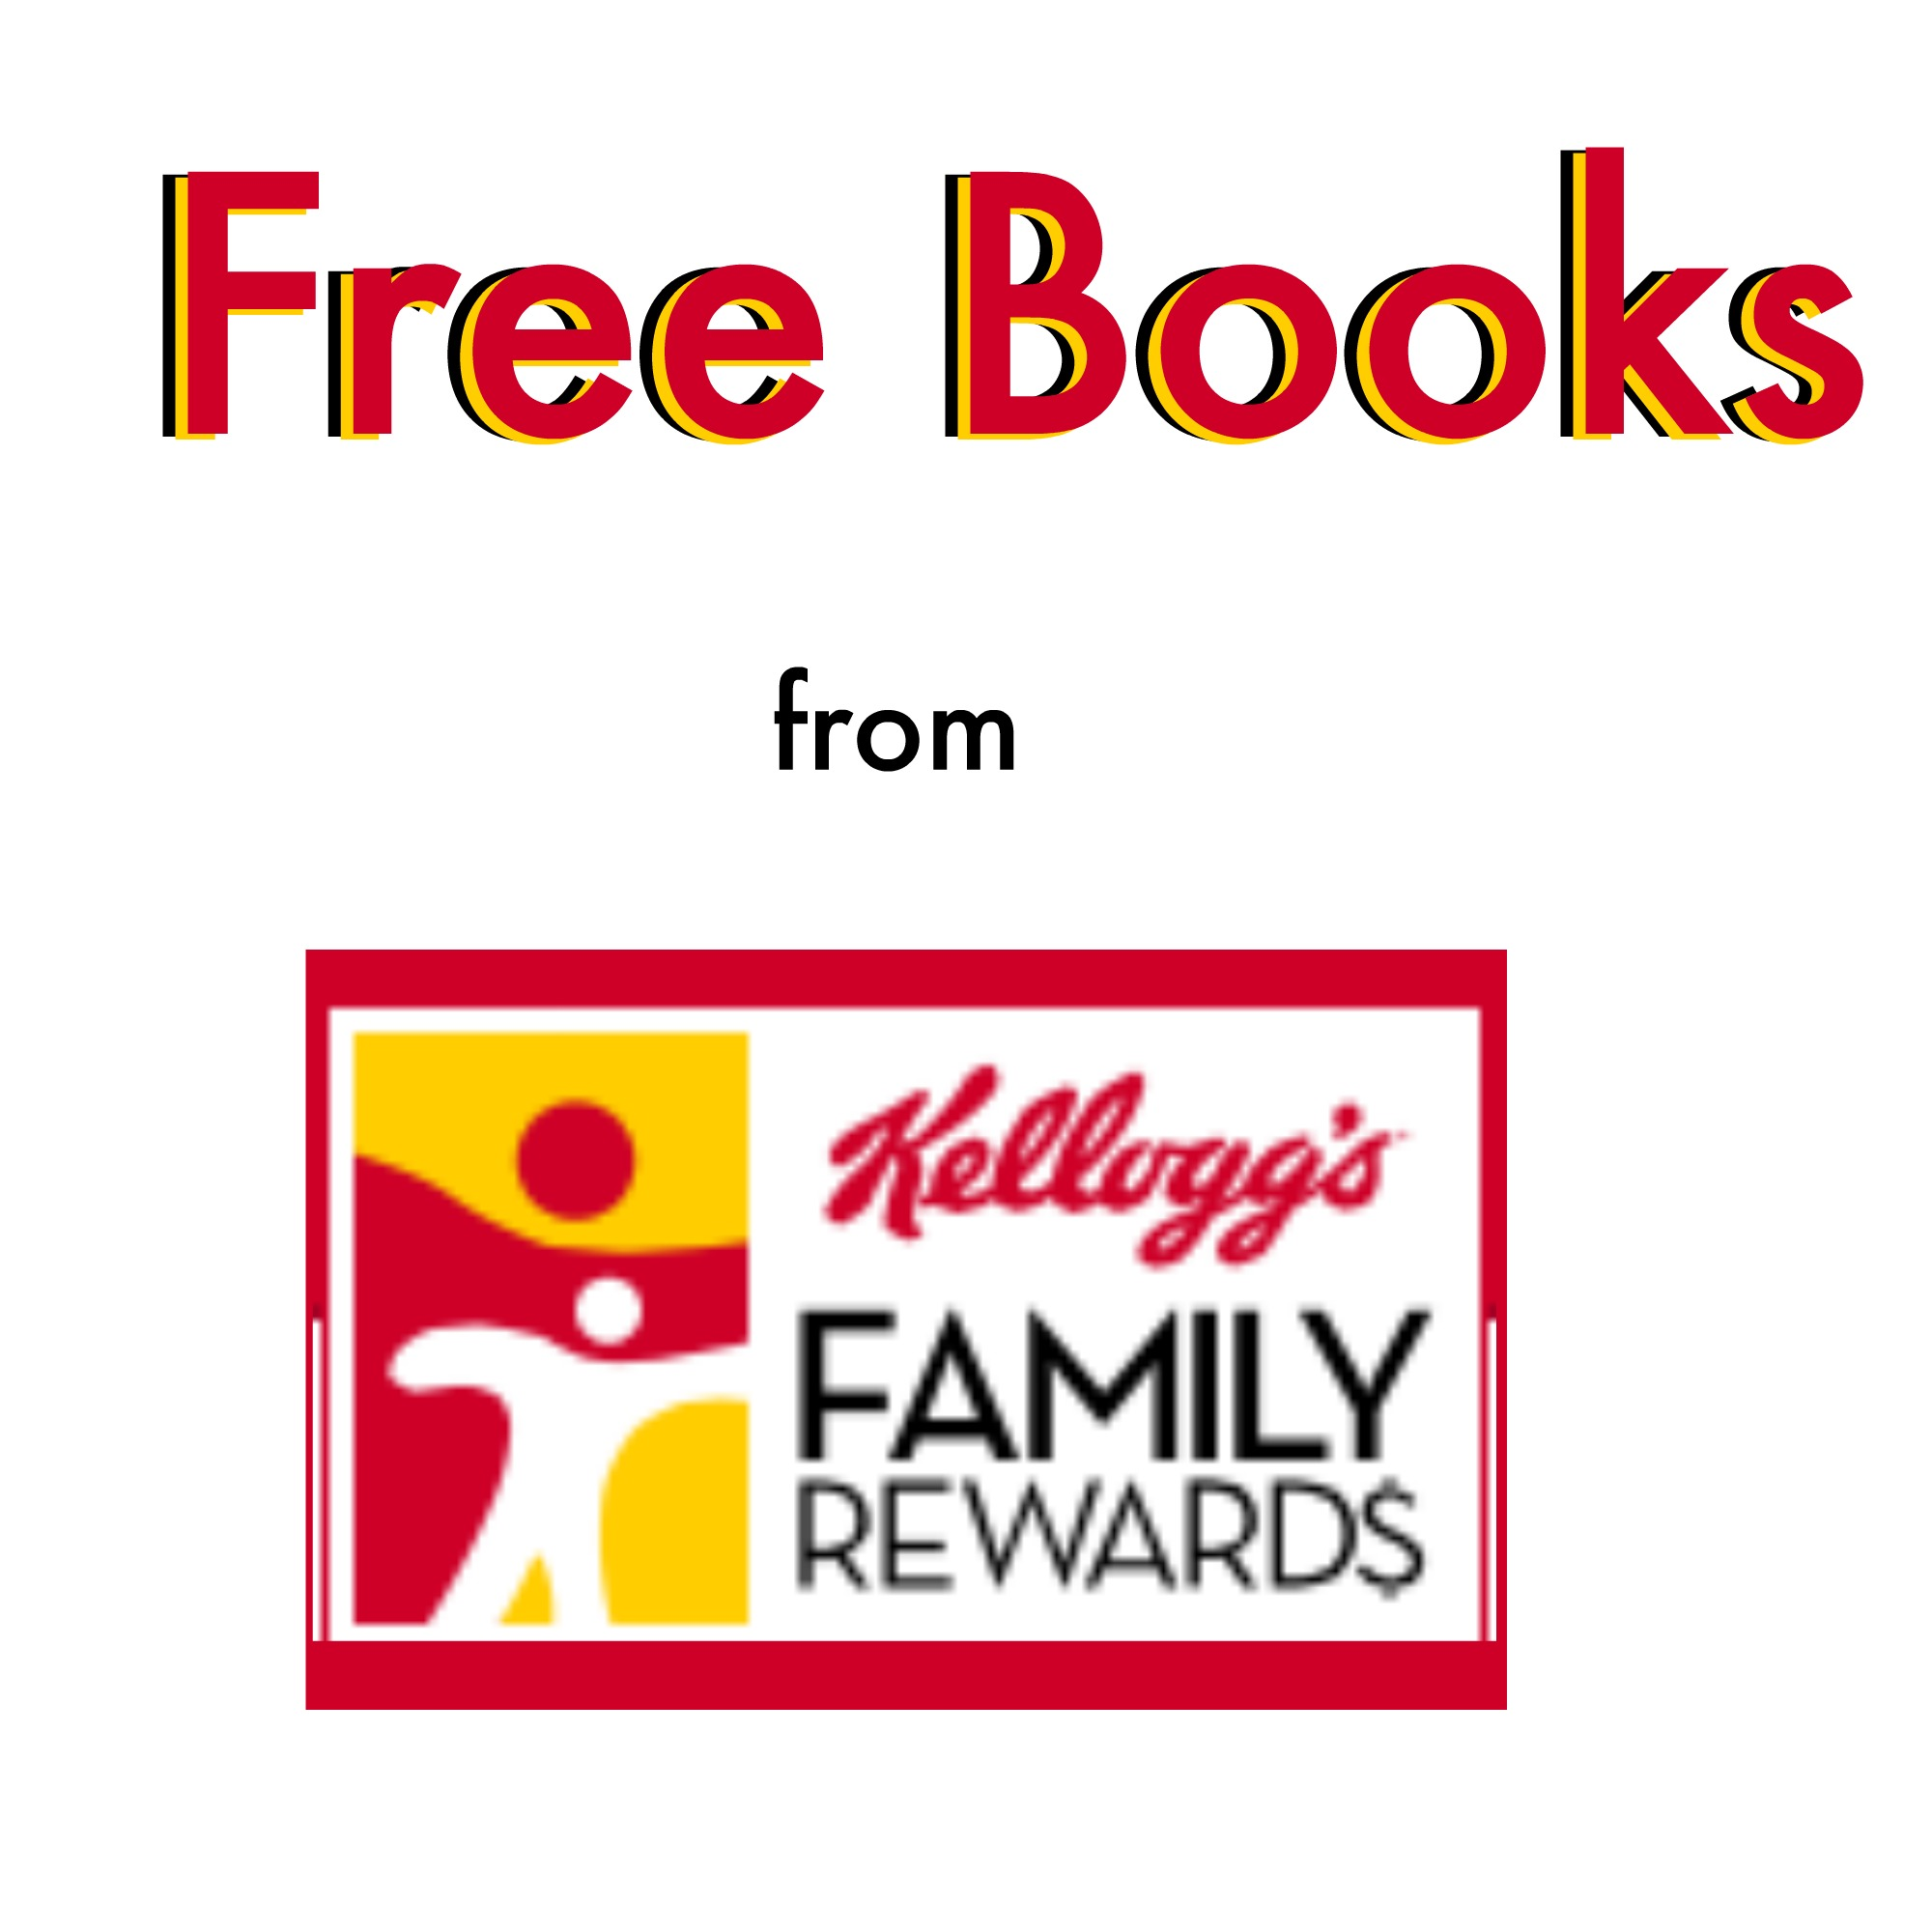 Free books for kids!